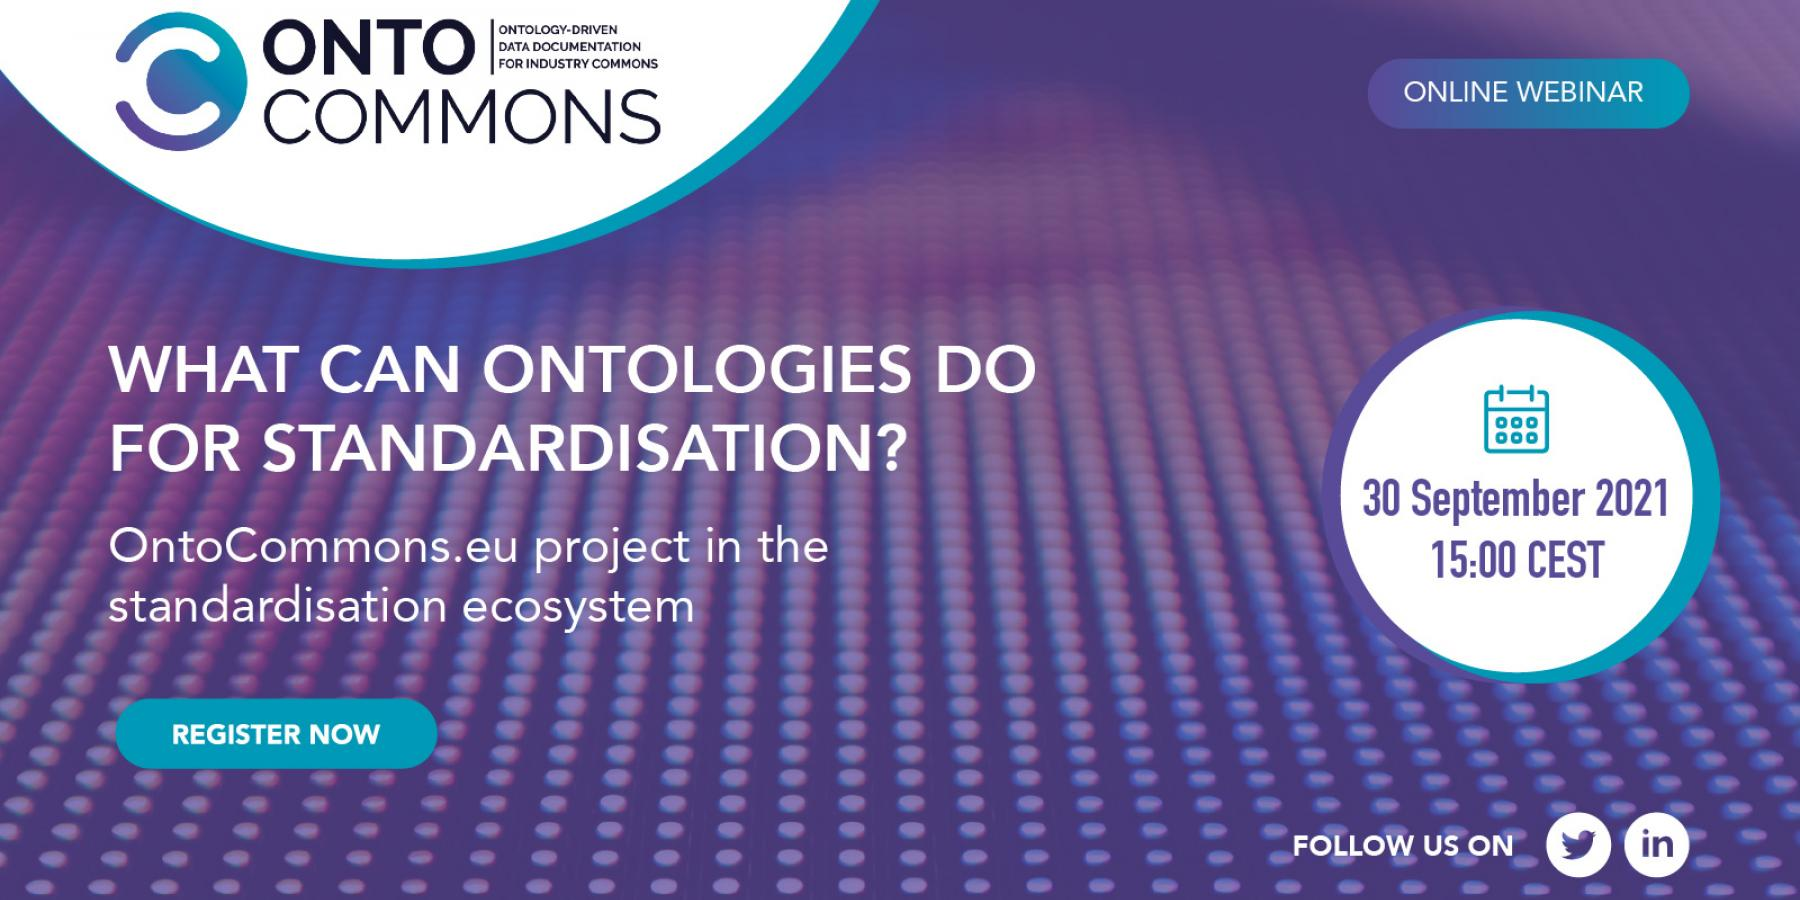 What Can Ontologies Do for Standardisation? OntoCommons.eu Project in the Standardisation Ecosystem